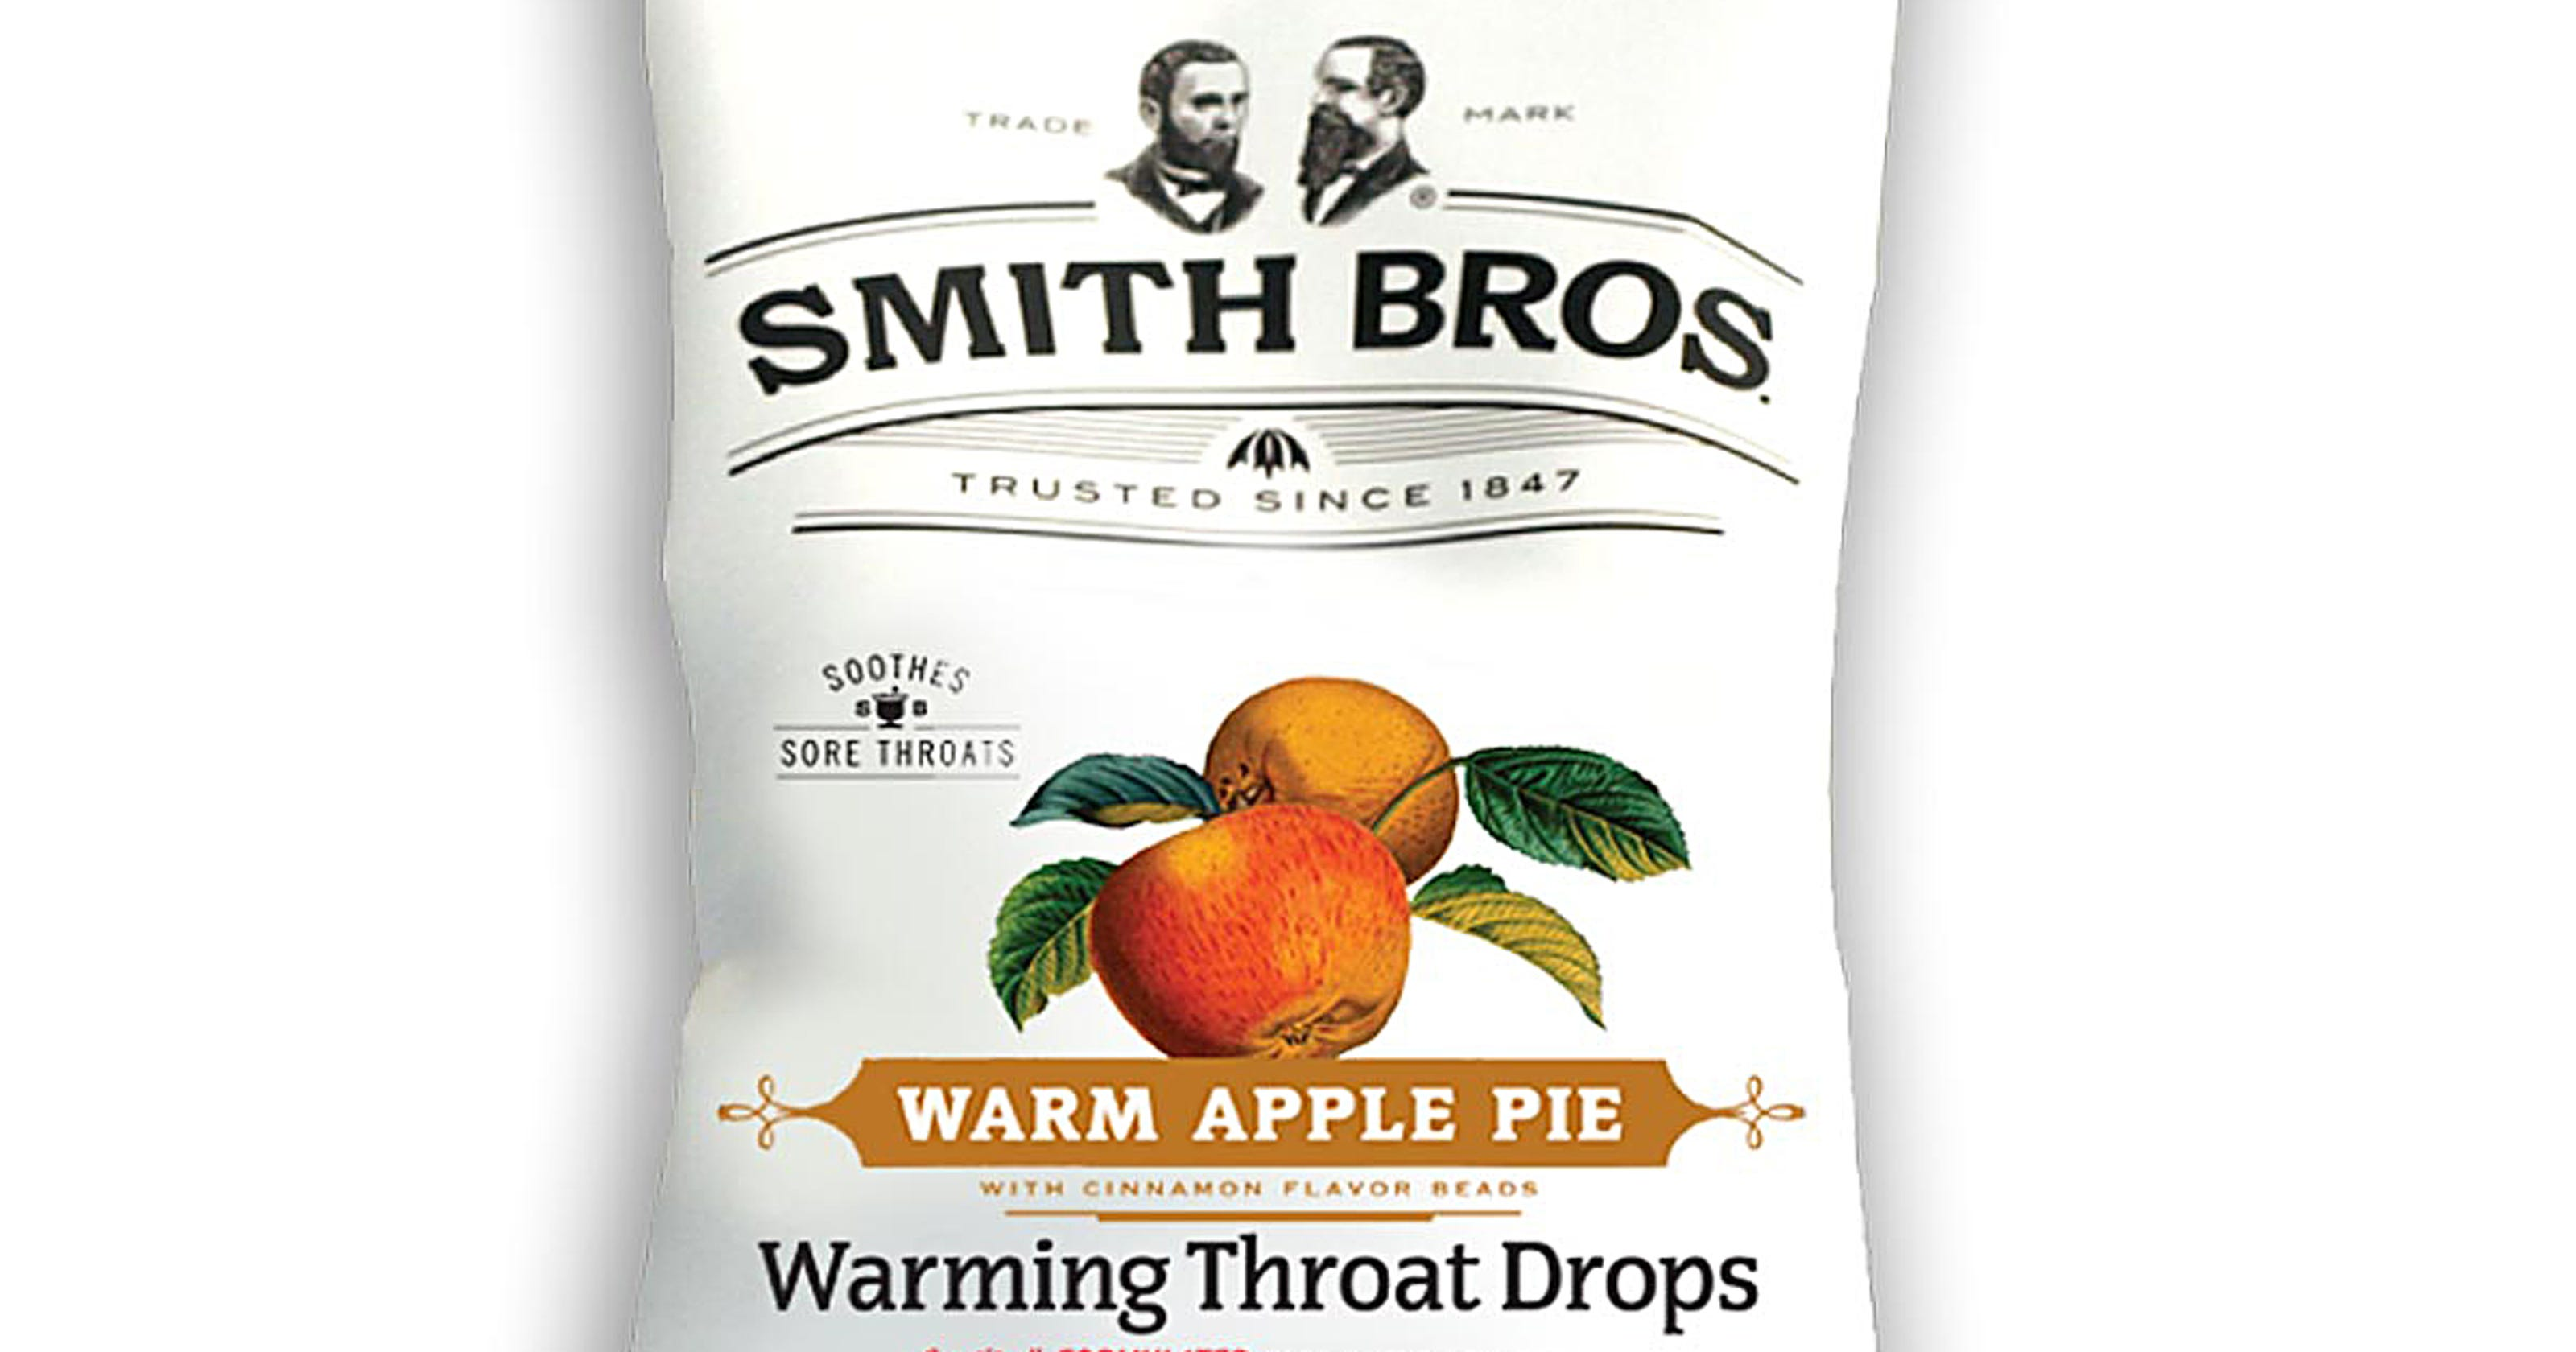 Smith Brothers Cough Drops Return Golden Throat Lozenge